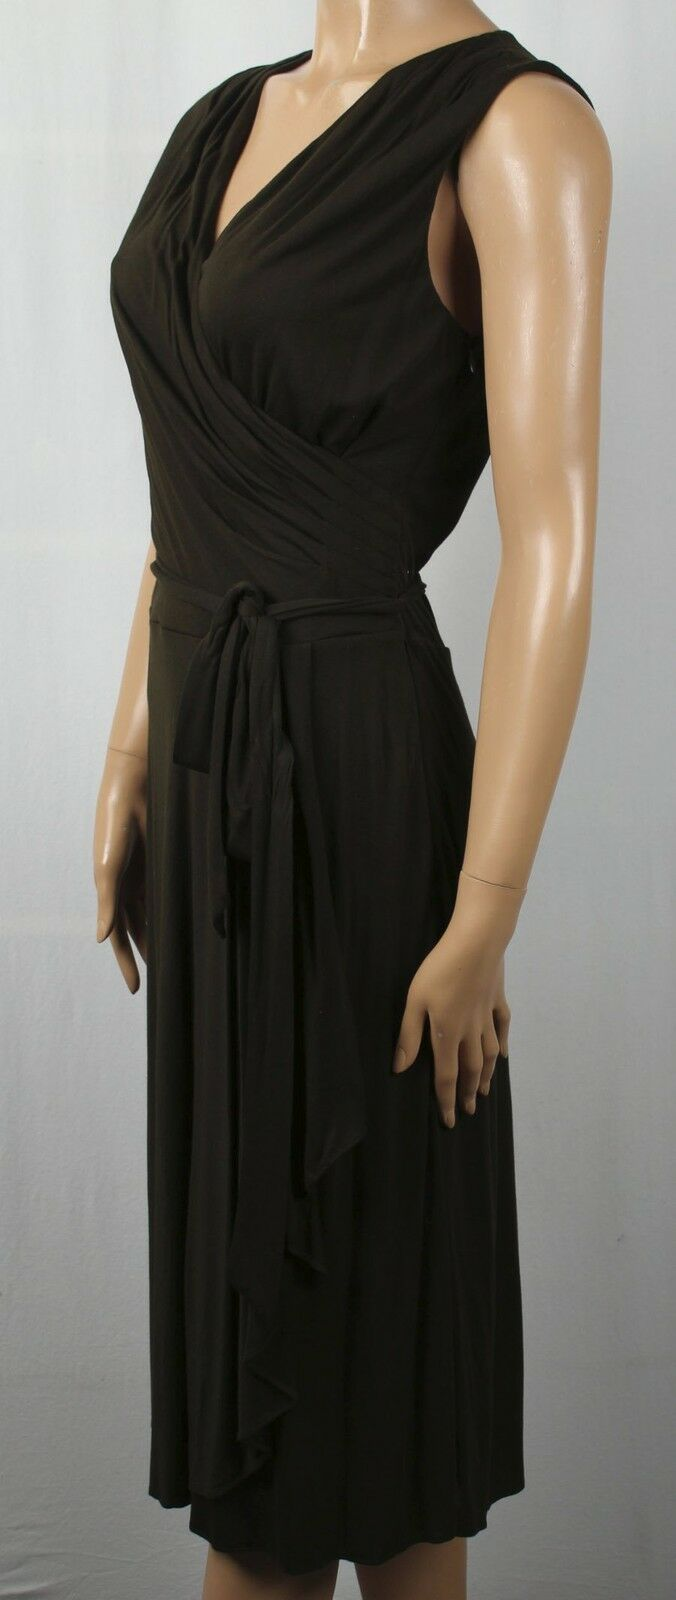 Ralph Lauren Knee Length Sleeveless Brown Pleated Wrap Ruffle Dress NWT